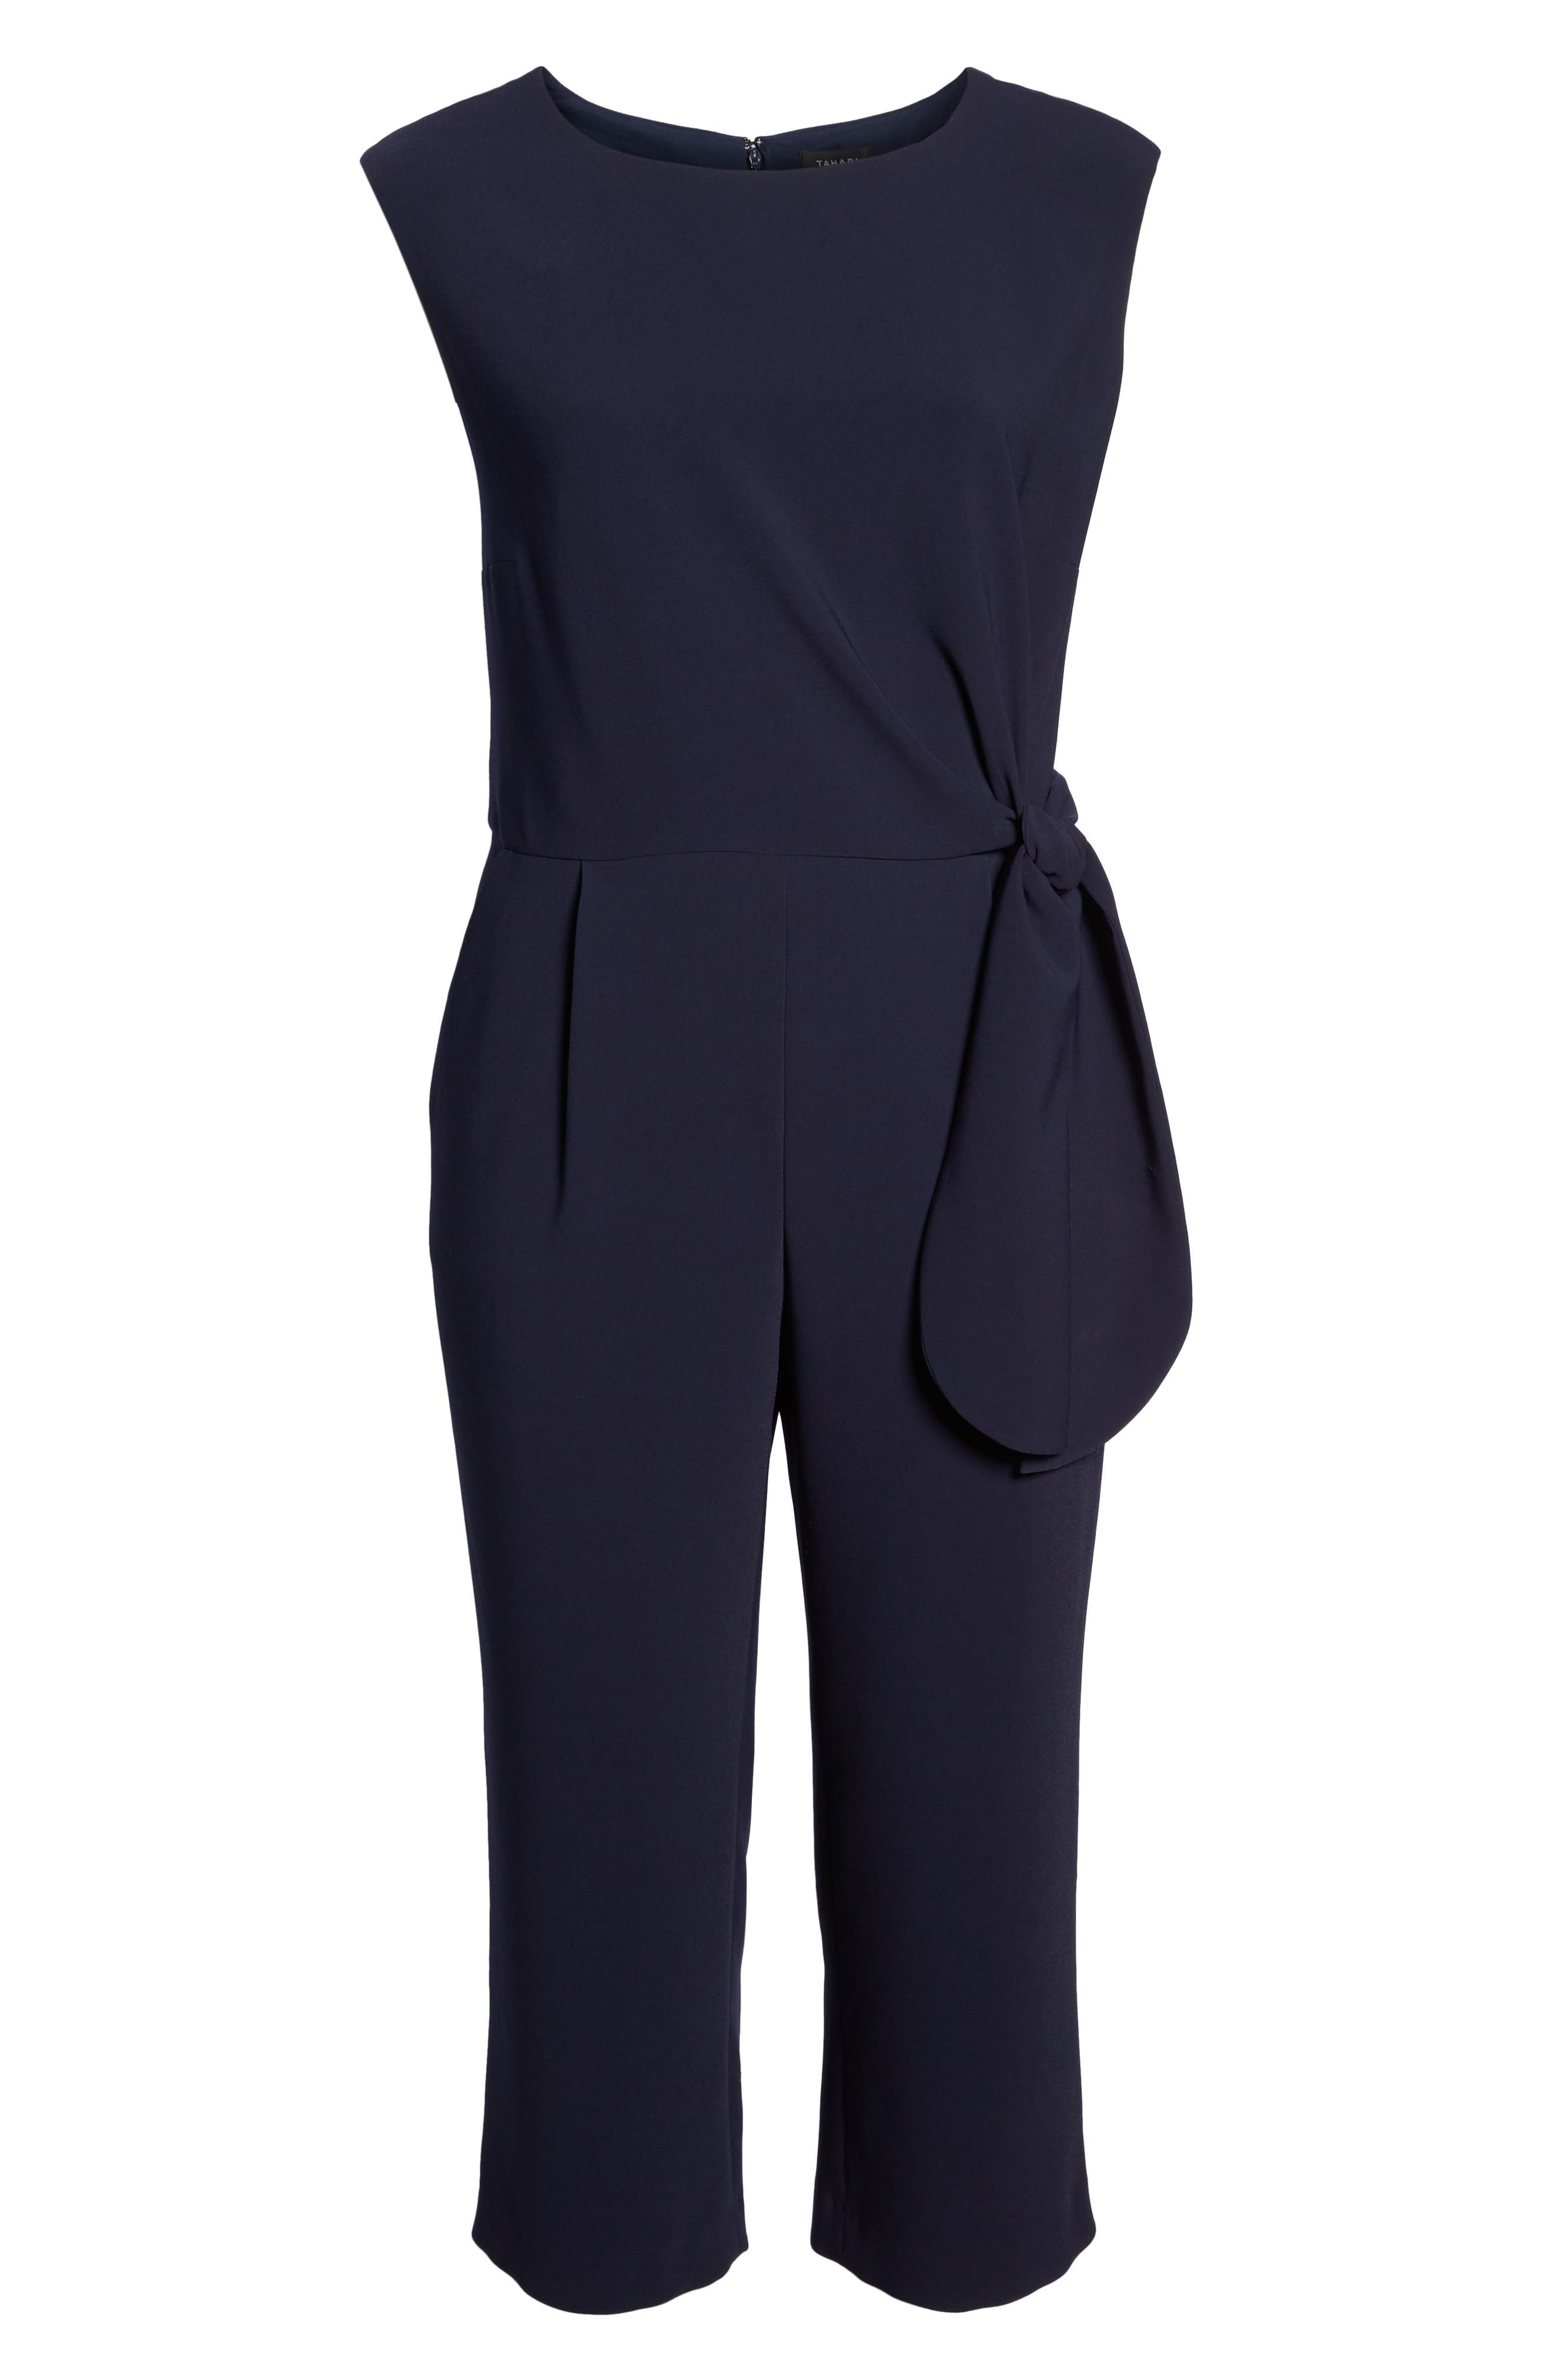 TAHARI, Tie Waist Crop Crepe Jumpsuit, Alternate thumbnail 6, color, NAVY